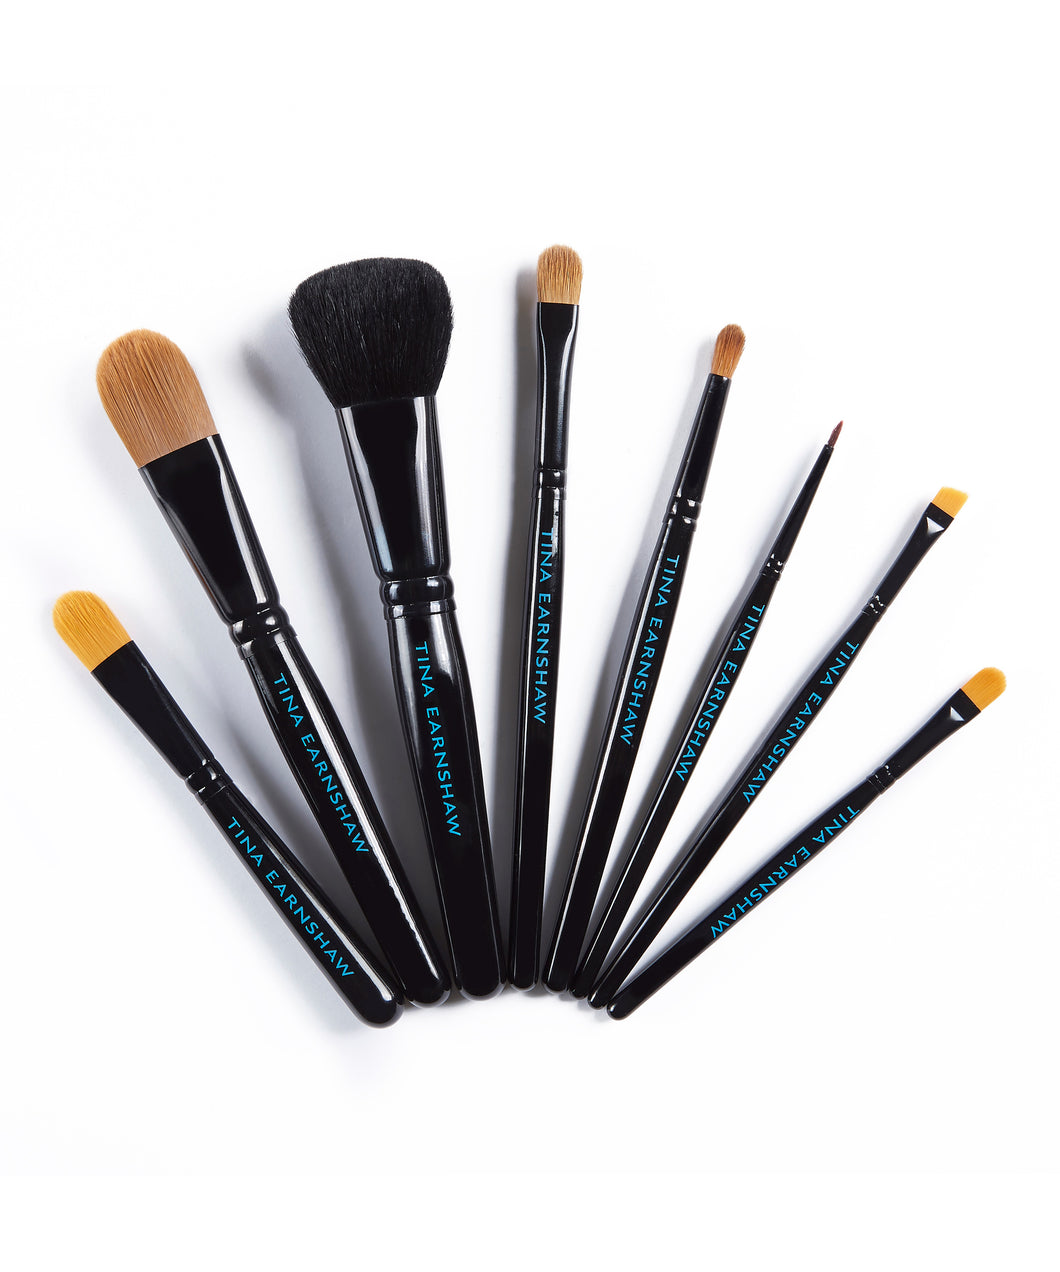 Deluxe brush set - 8 Brushes